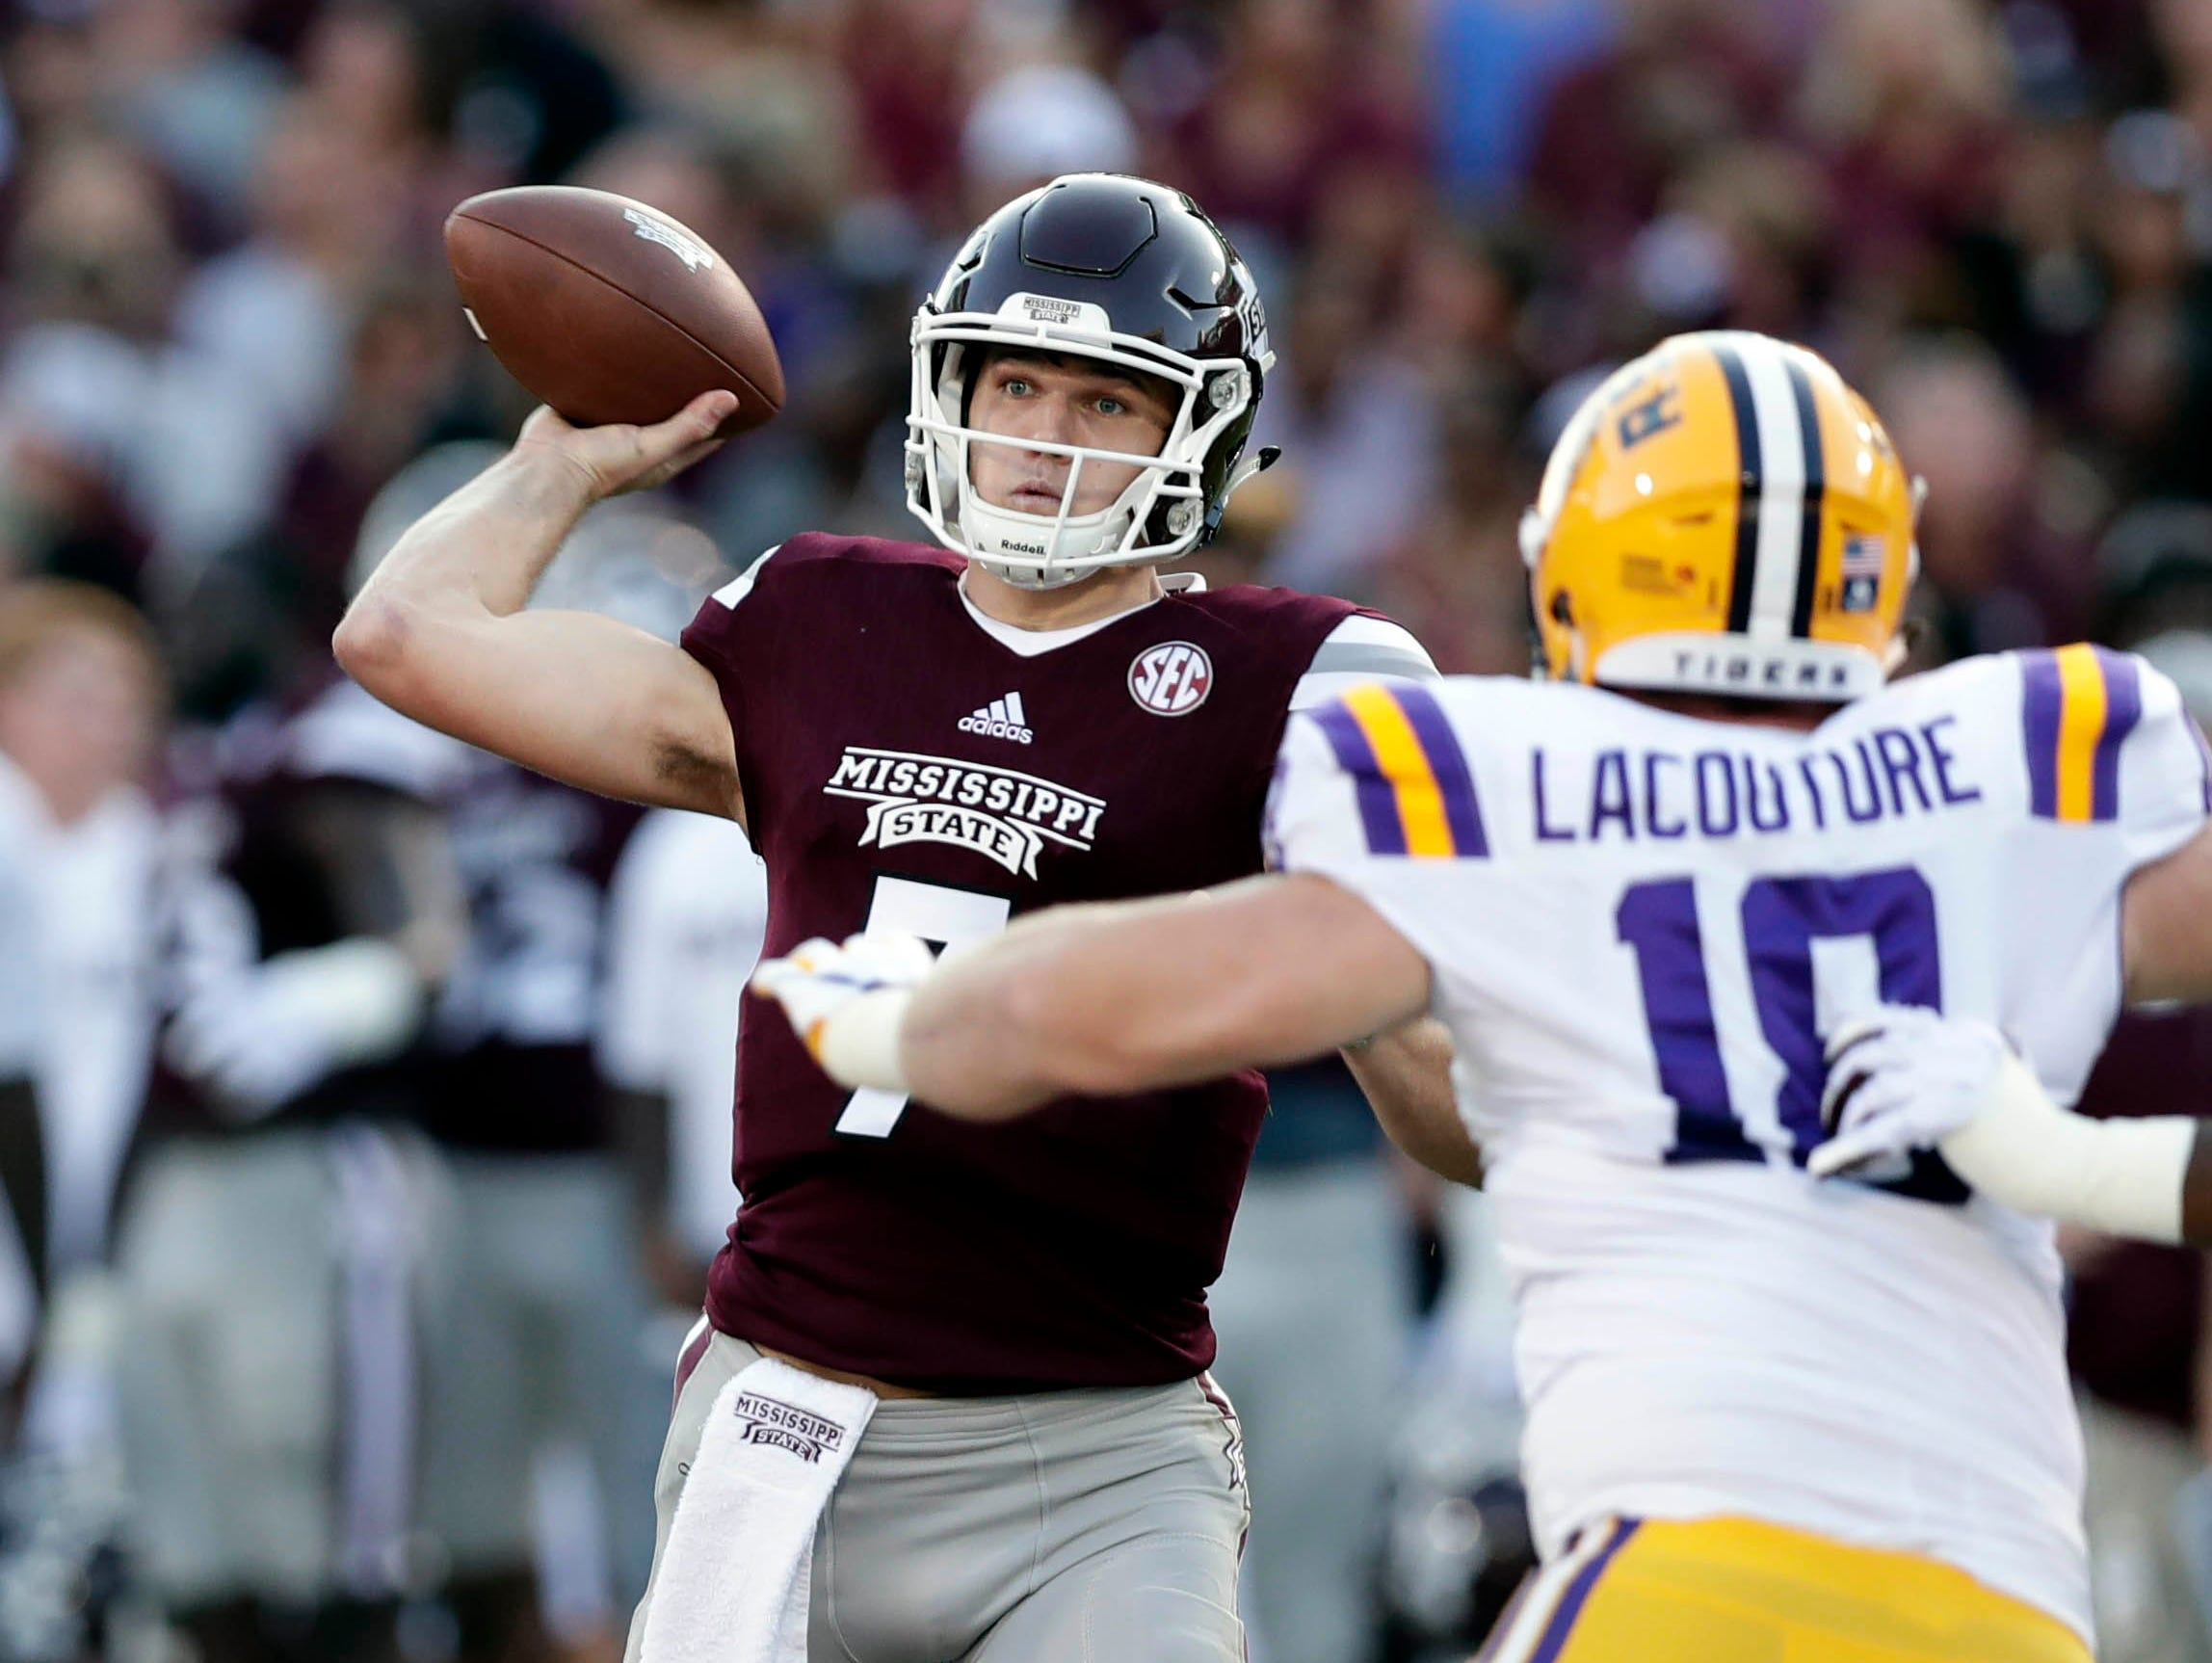 Mississippi State quarterback Nick Fitzgerald (7) attempts a pass as LSU defensive end Christian LaCouture (18) defends during the first half of their NCAA college football game against in Starkville, Miss., Saturday, Sept. 16, 2017.